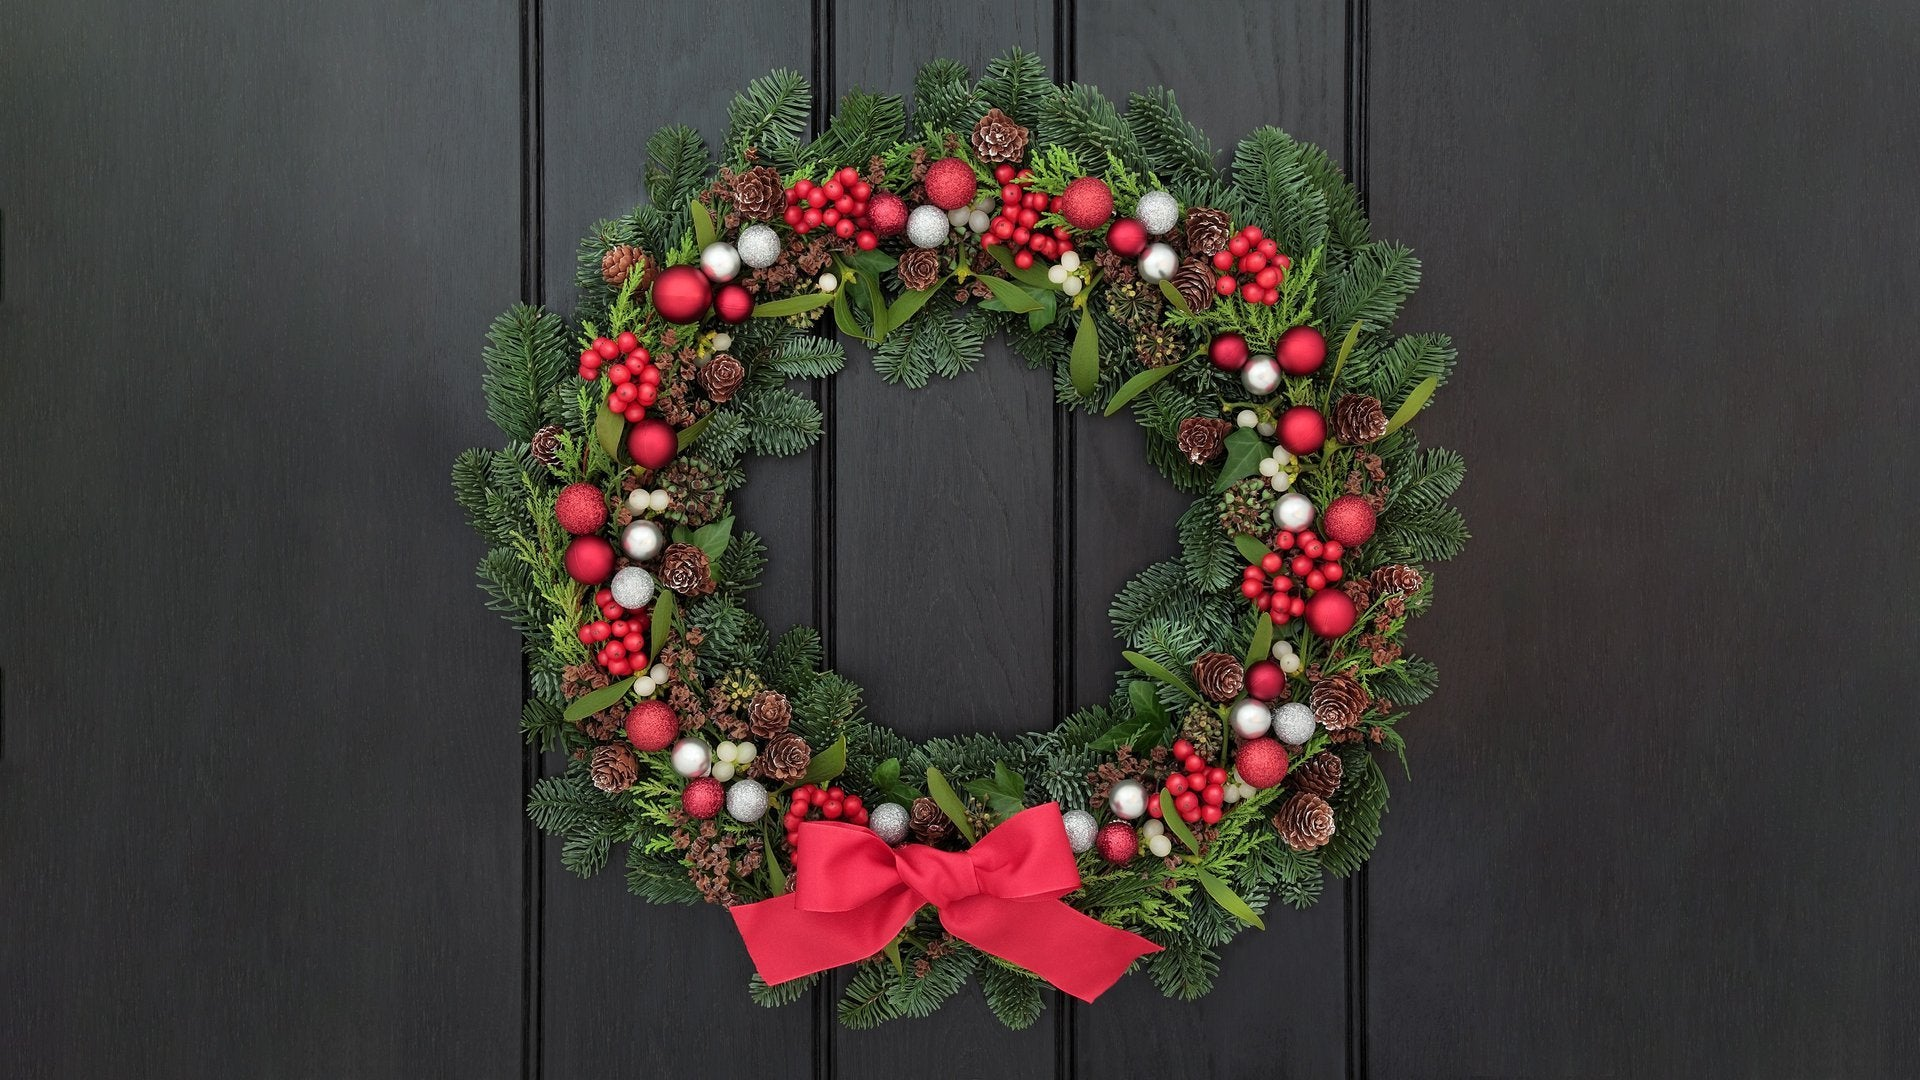 Hallmark Channel's Holiday Home Decorating Reveal